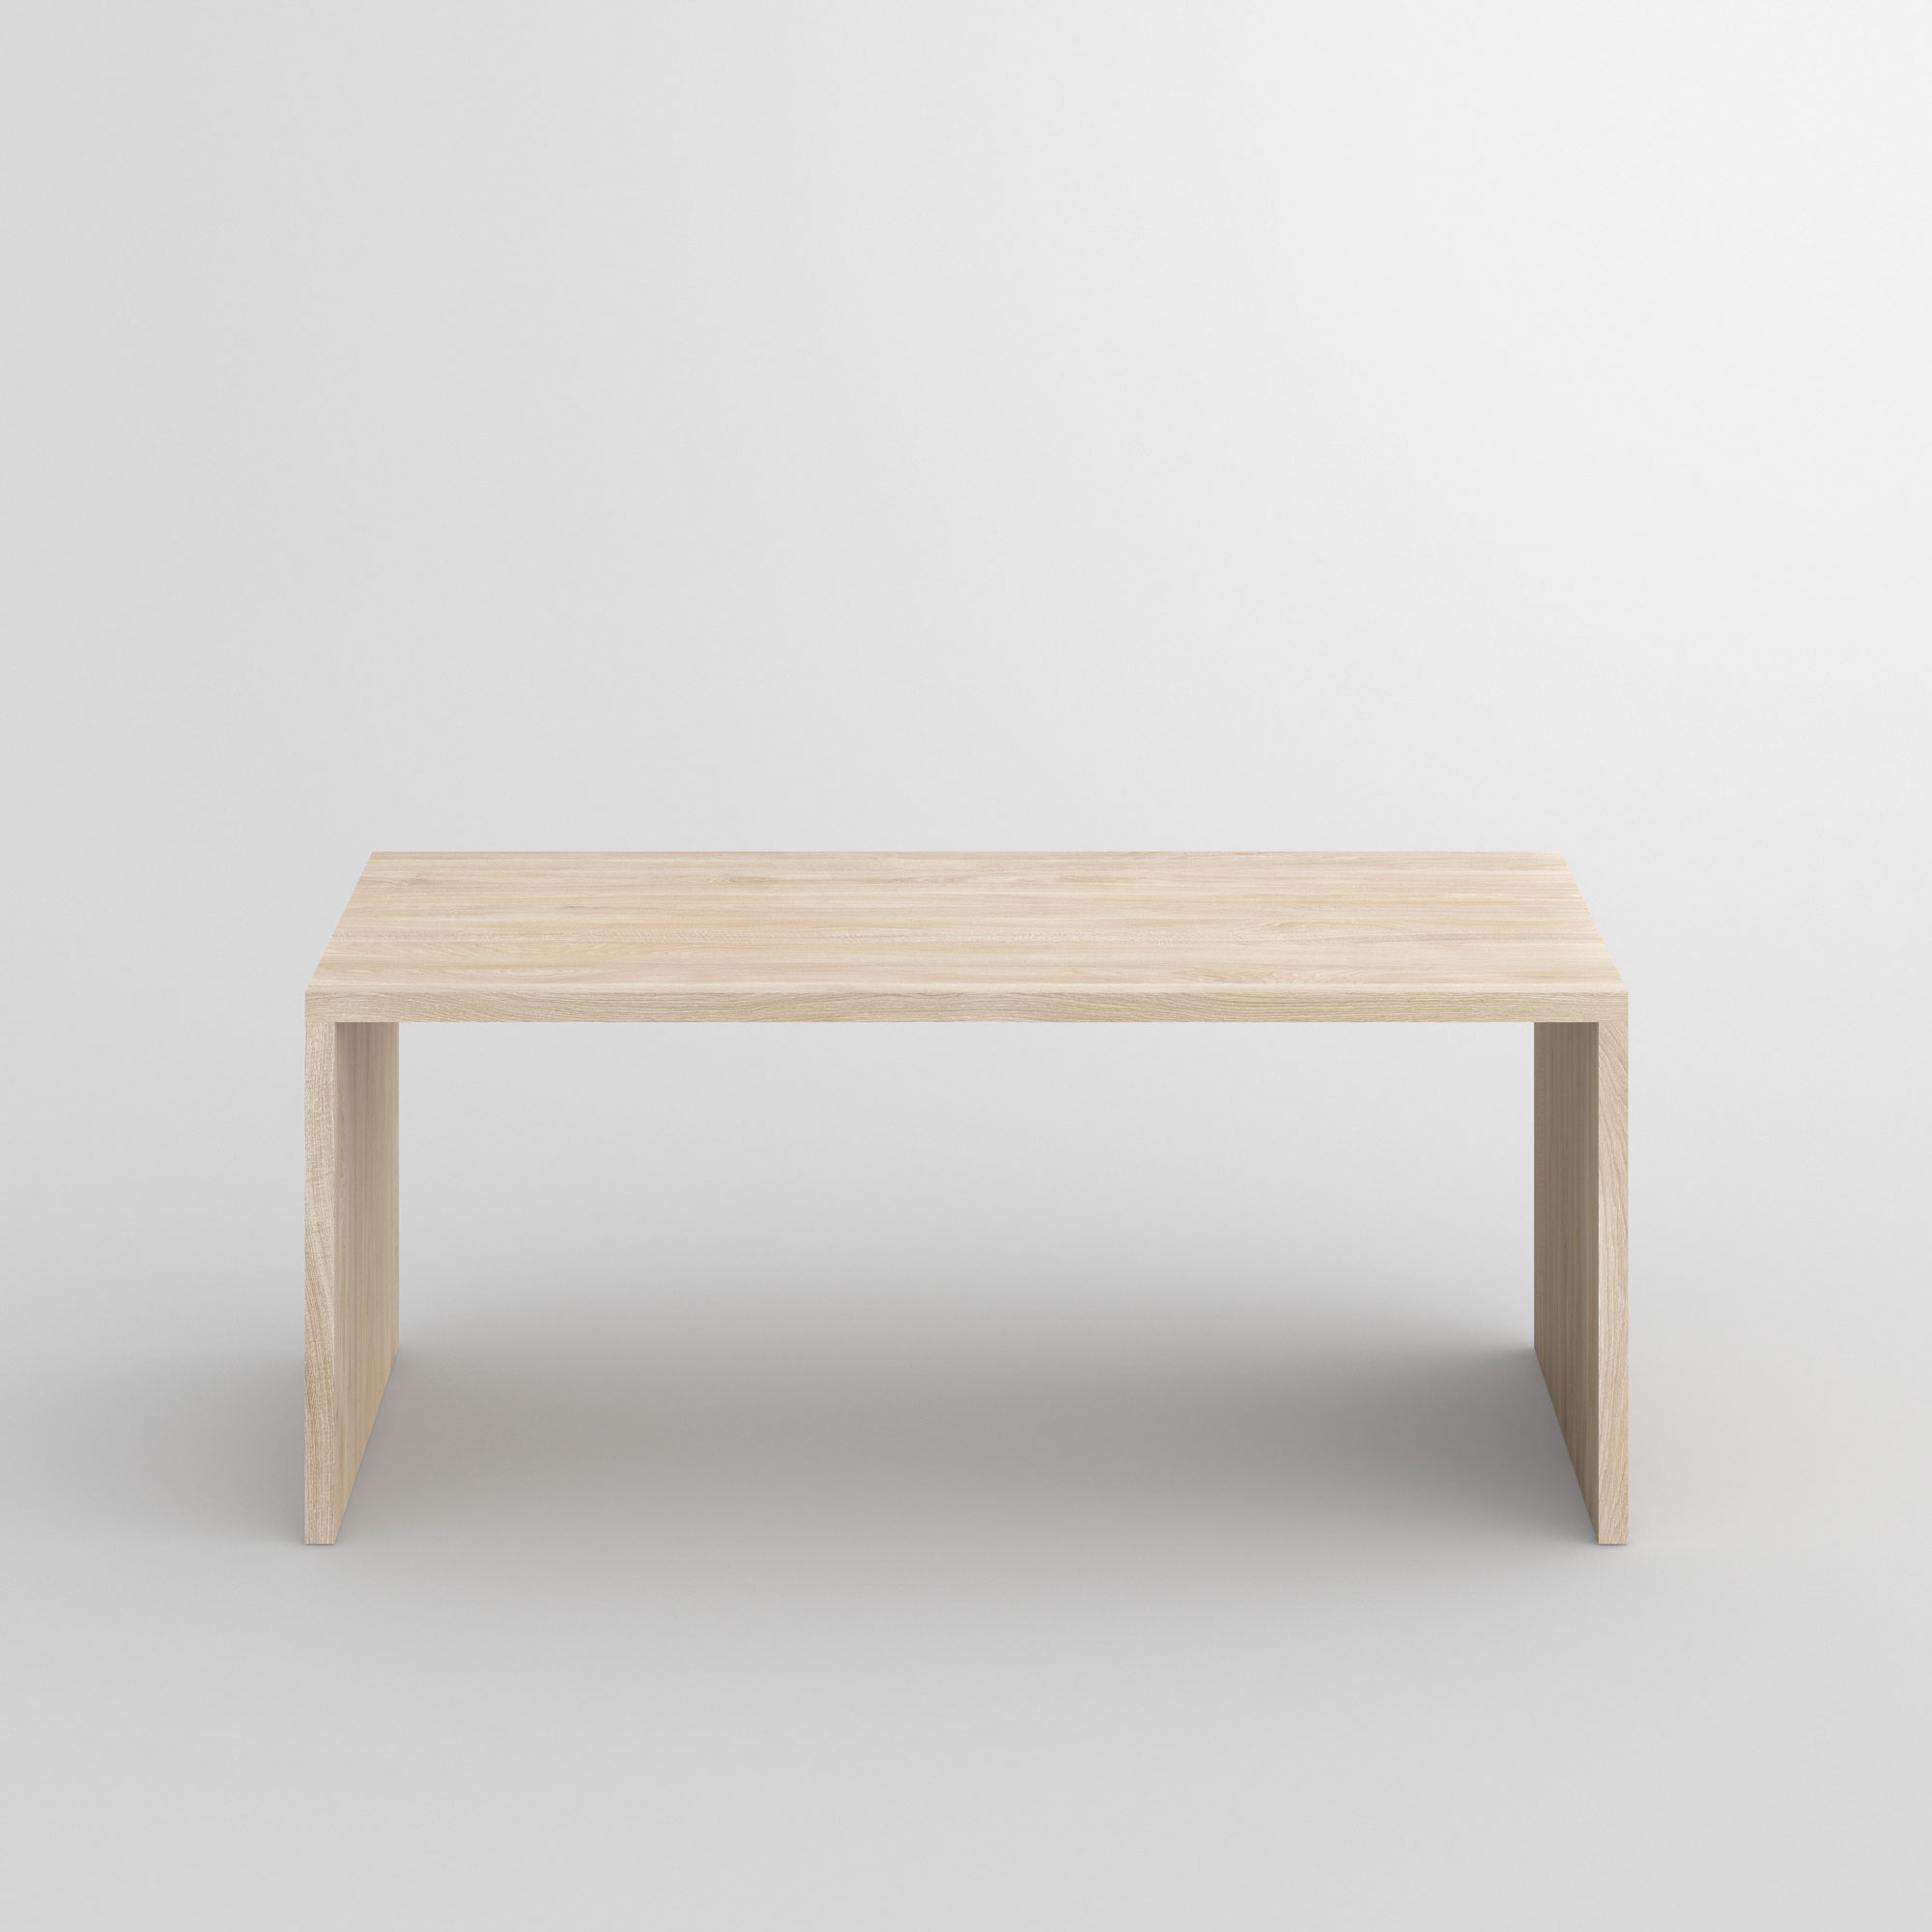 Gable Table MENA cam2 custom made in solid wood by vitamin design